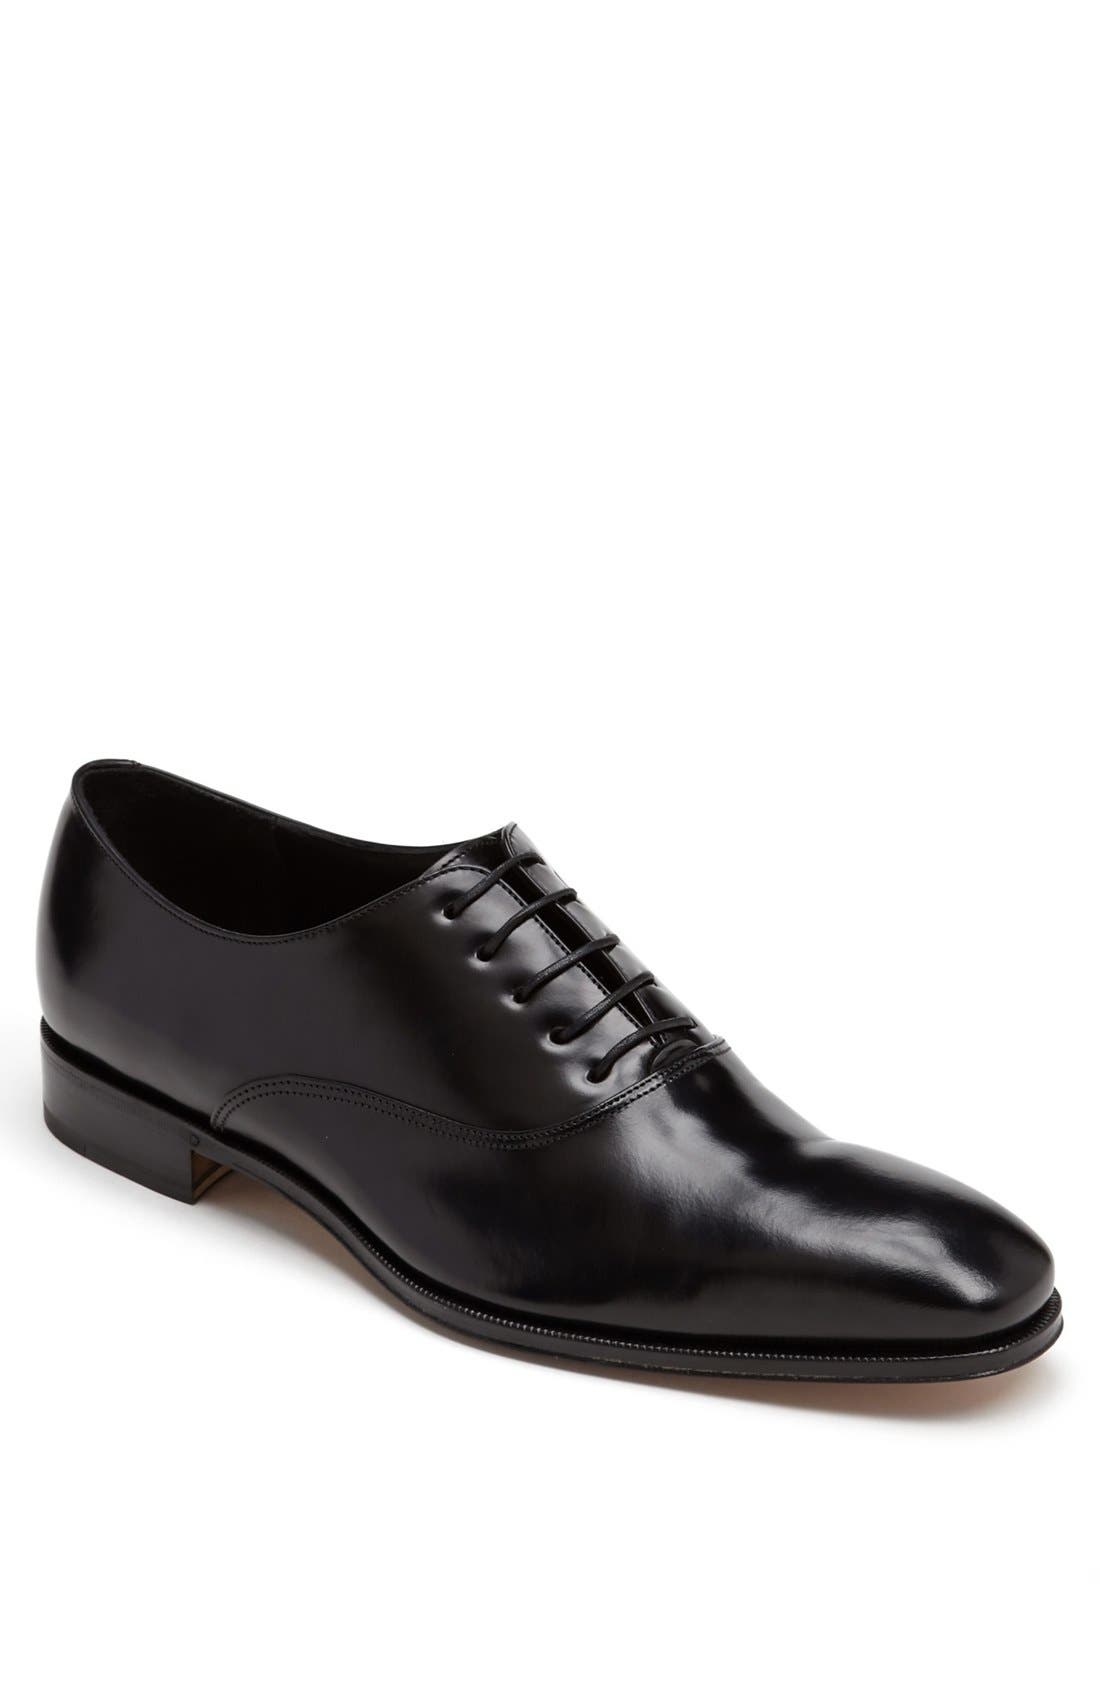 Alternate Image 1 Selected - Salvatore Ferragamo 'Fedele' Oxford